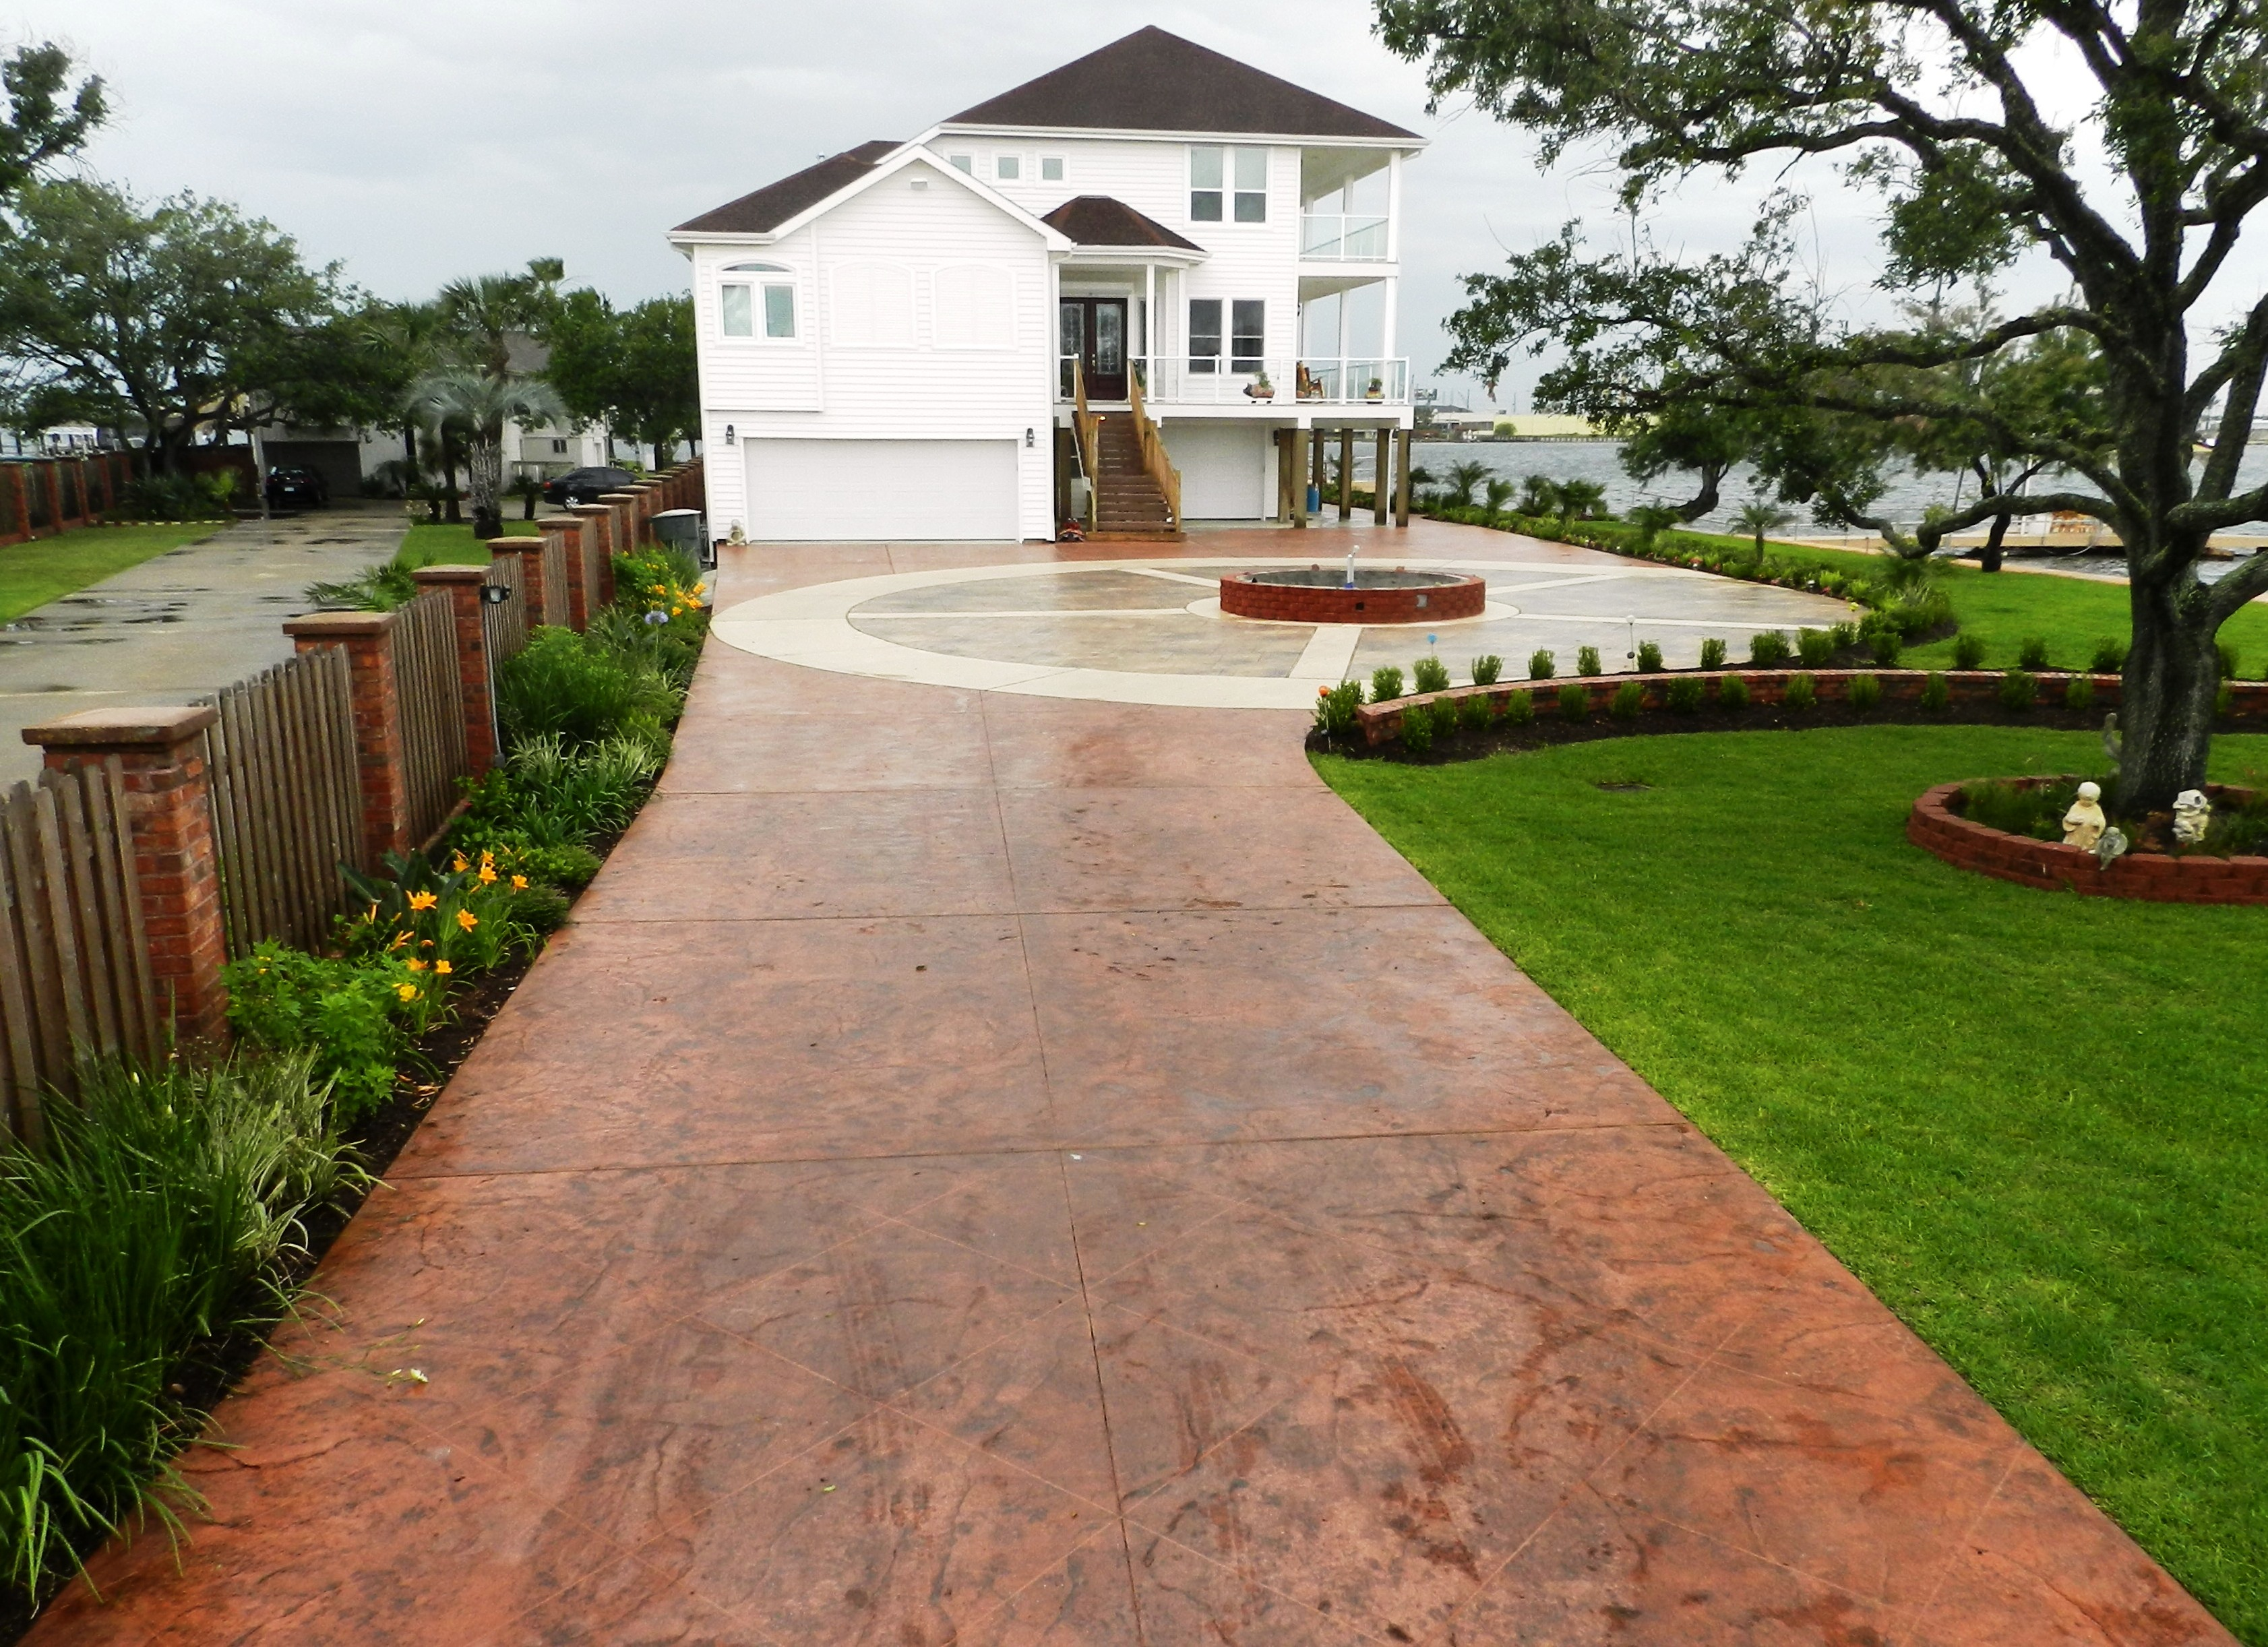 VIEW IN GALLERY Cost Of Stamped Concrete Patio With Wood Patio Furniture  For Outdoor Kitchen Designs Driveway With Cool